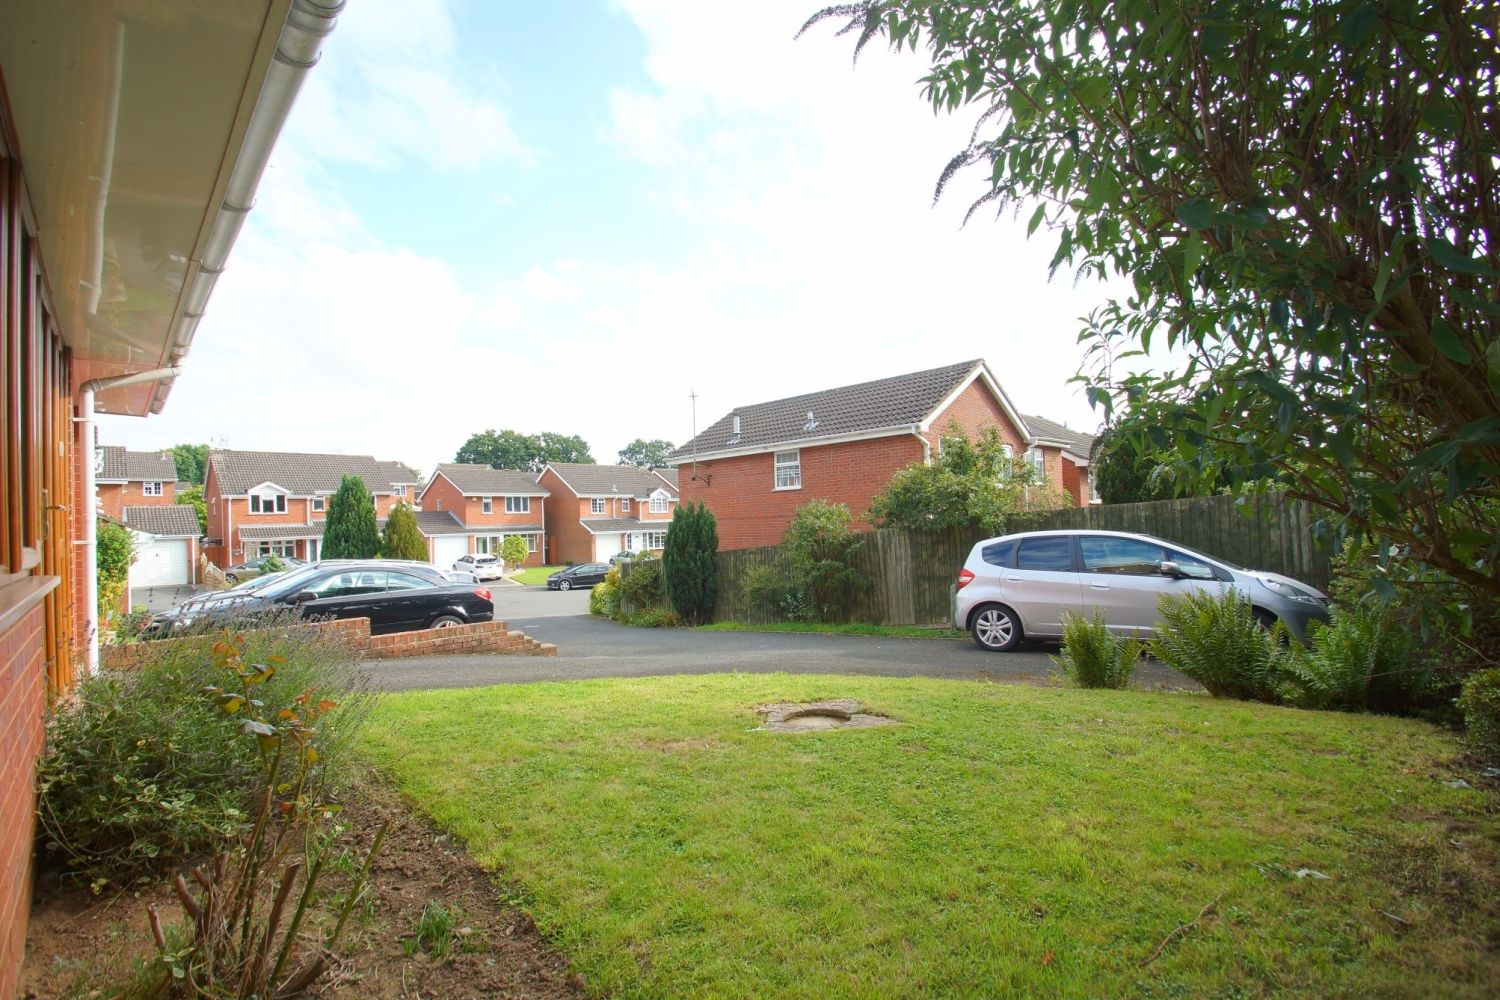 4 bed detached for sale in Packwood Close, Webheath  - Property Image 20